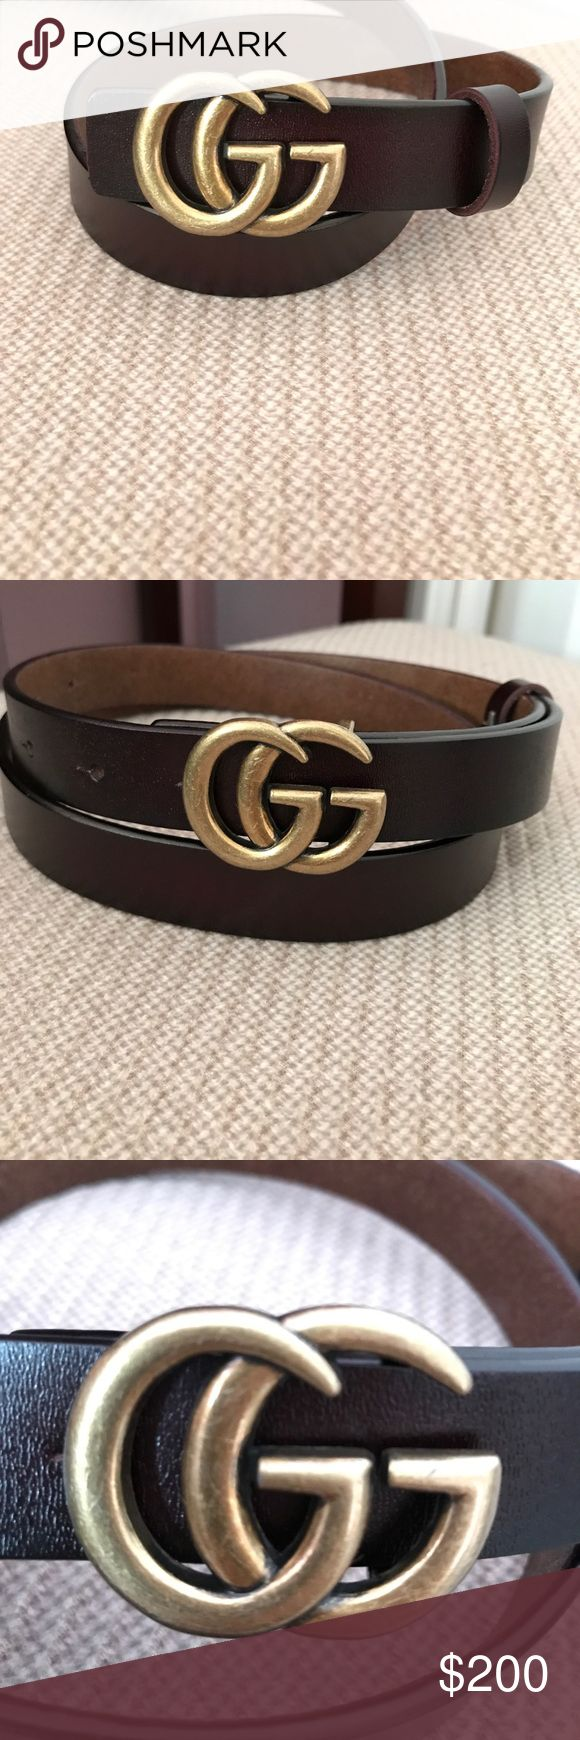 NEW Gucci belt BRAND NEW GUCCI BELT. I bought this but it's not really my style!  make me an offer :) Gucci Accessories Belts